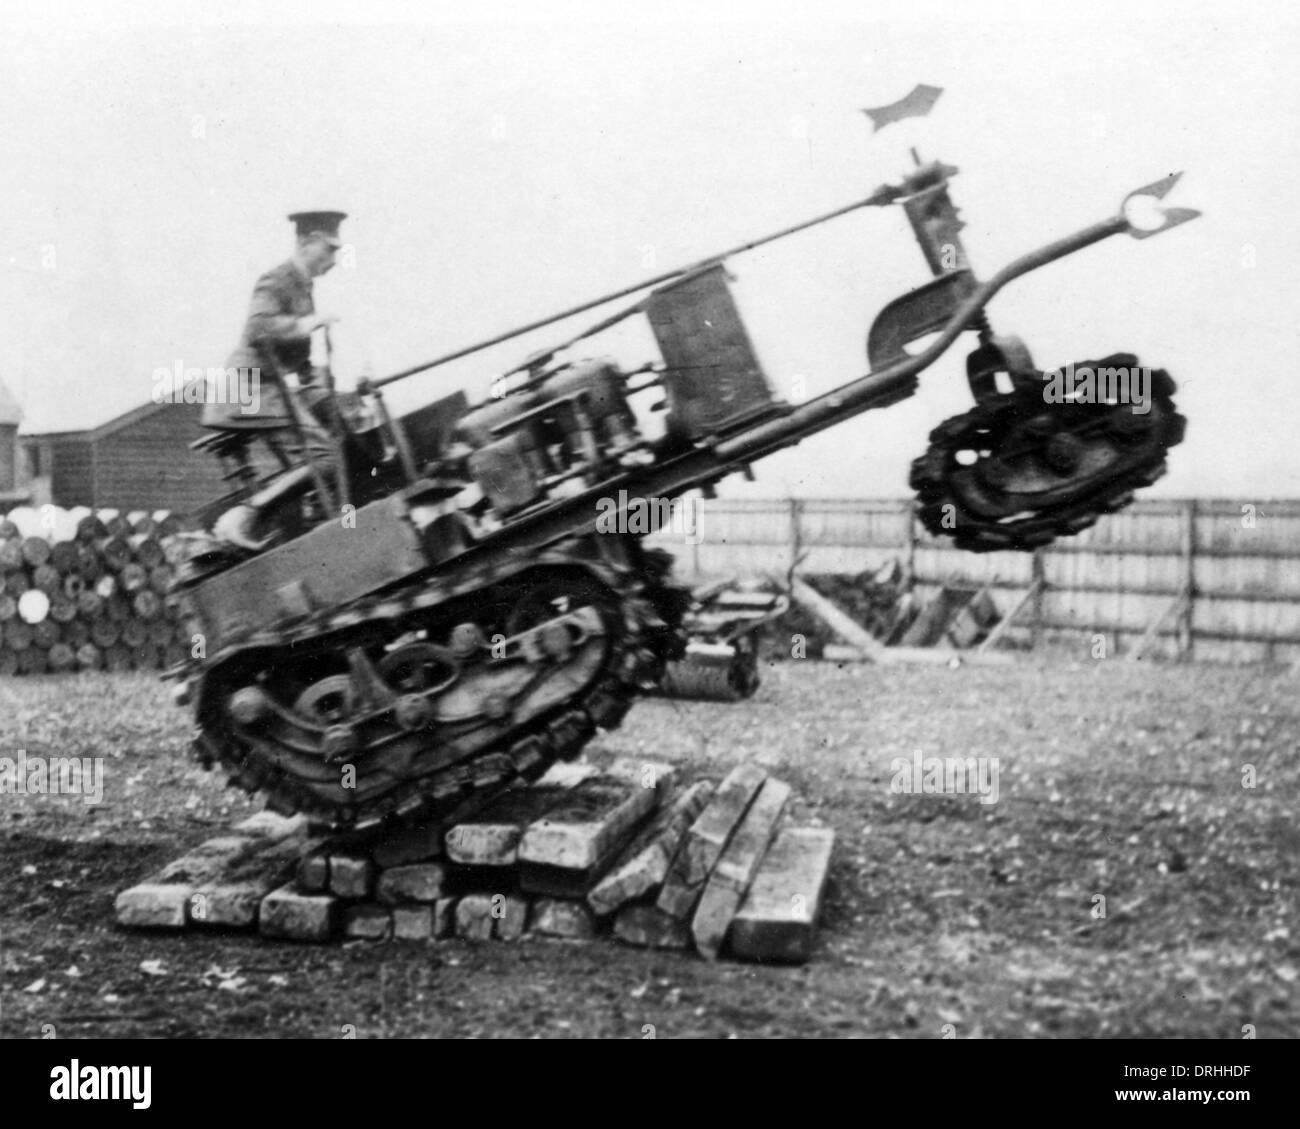 Experimenting with tank tracks, WW1 - Stock Image